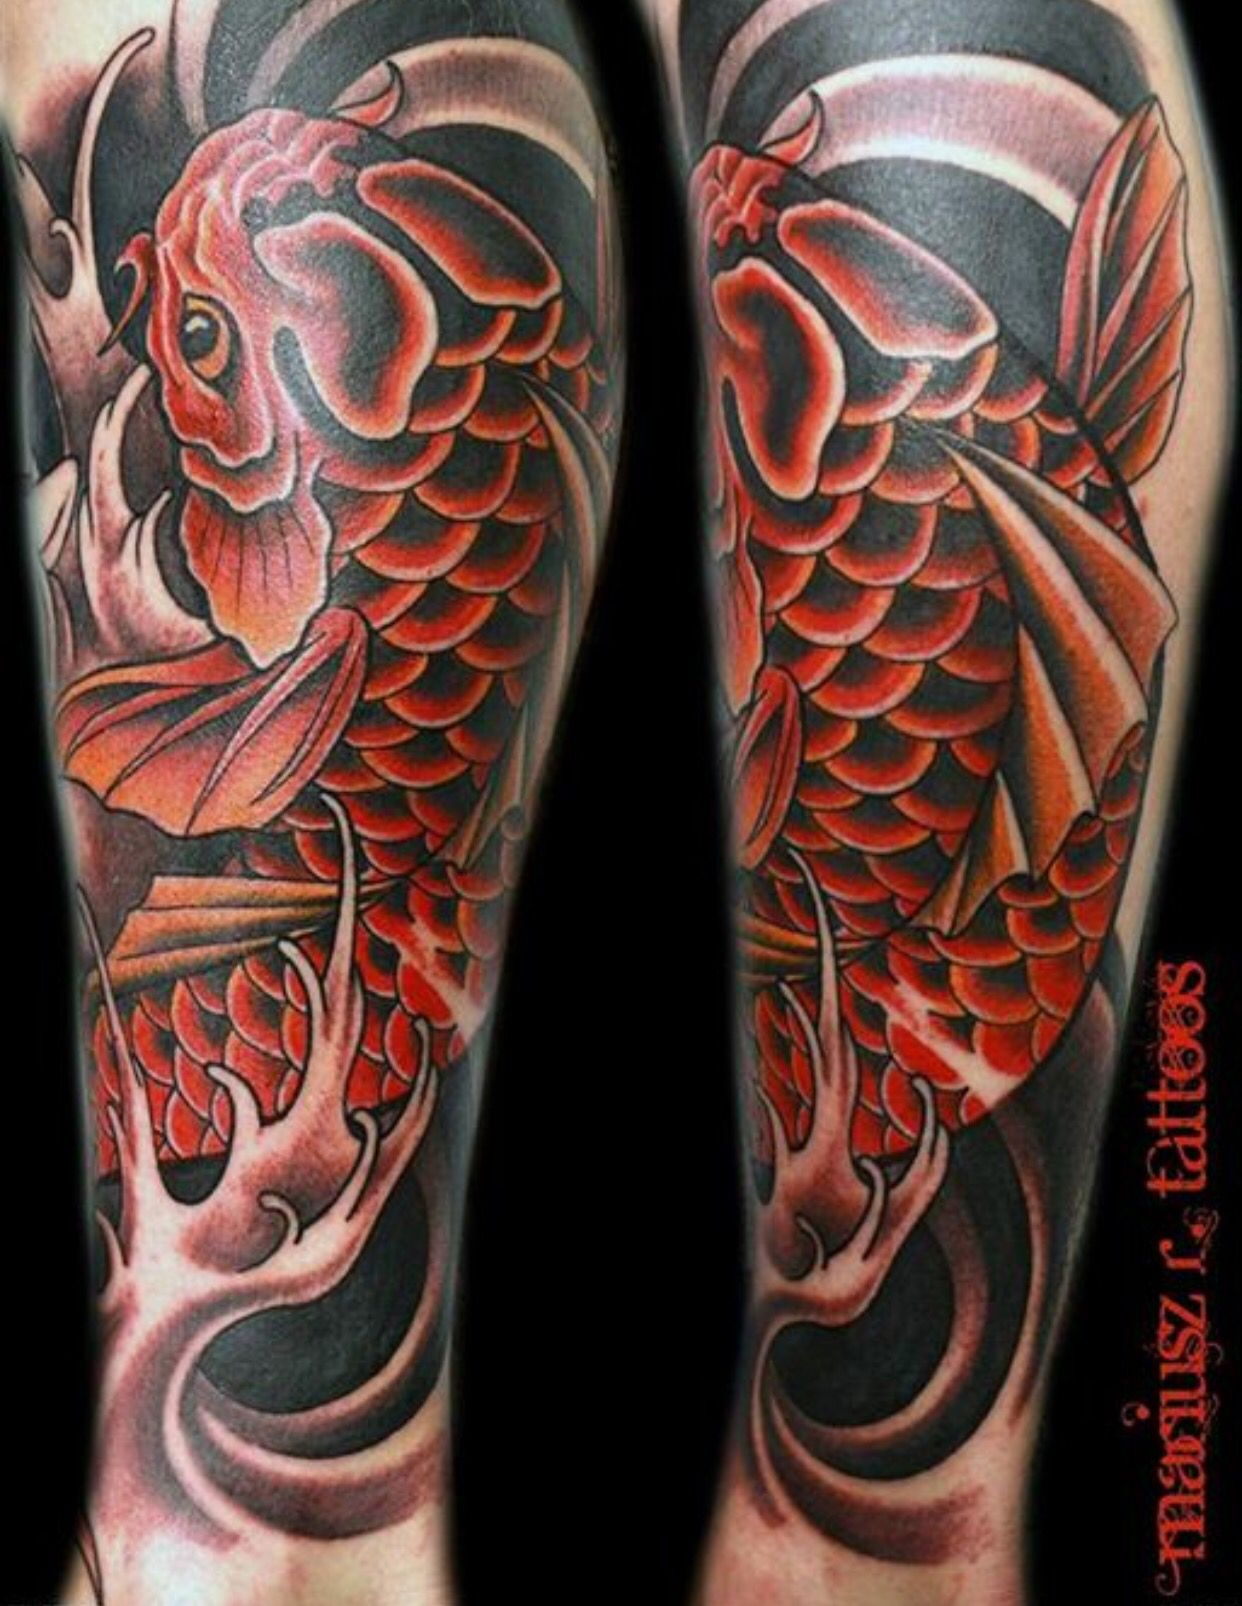 Coy fish codys cover up | tattoos | Pinterest | Coy fish ...